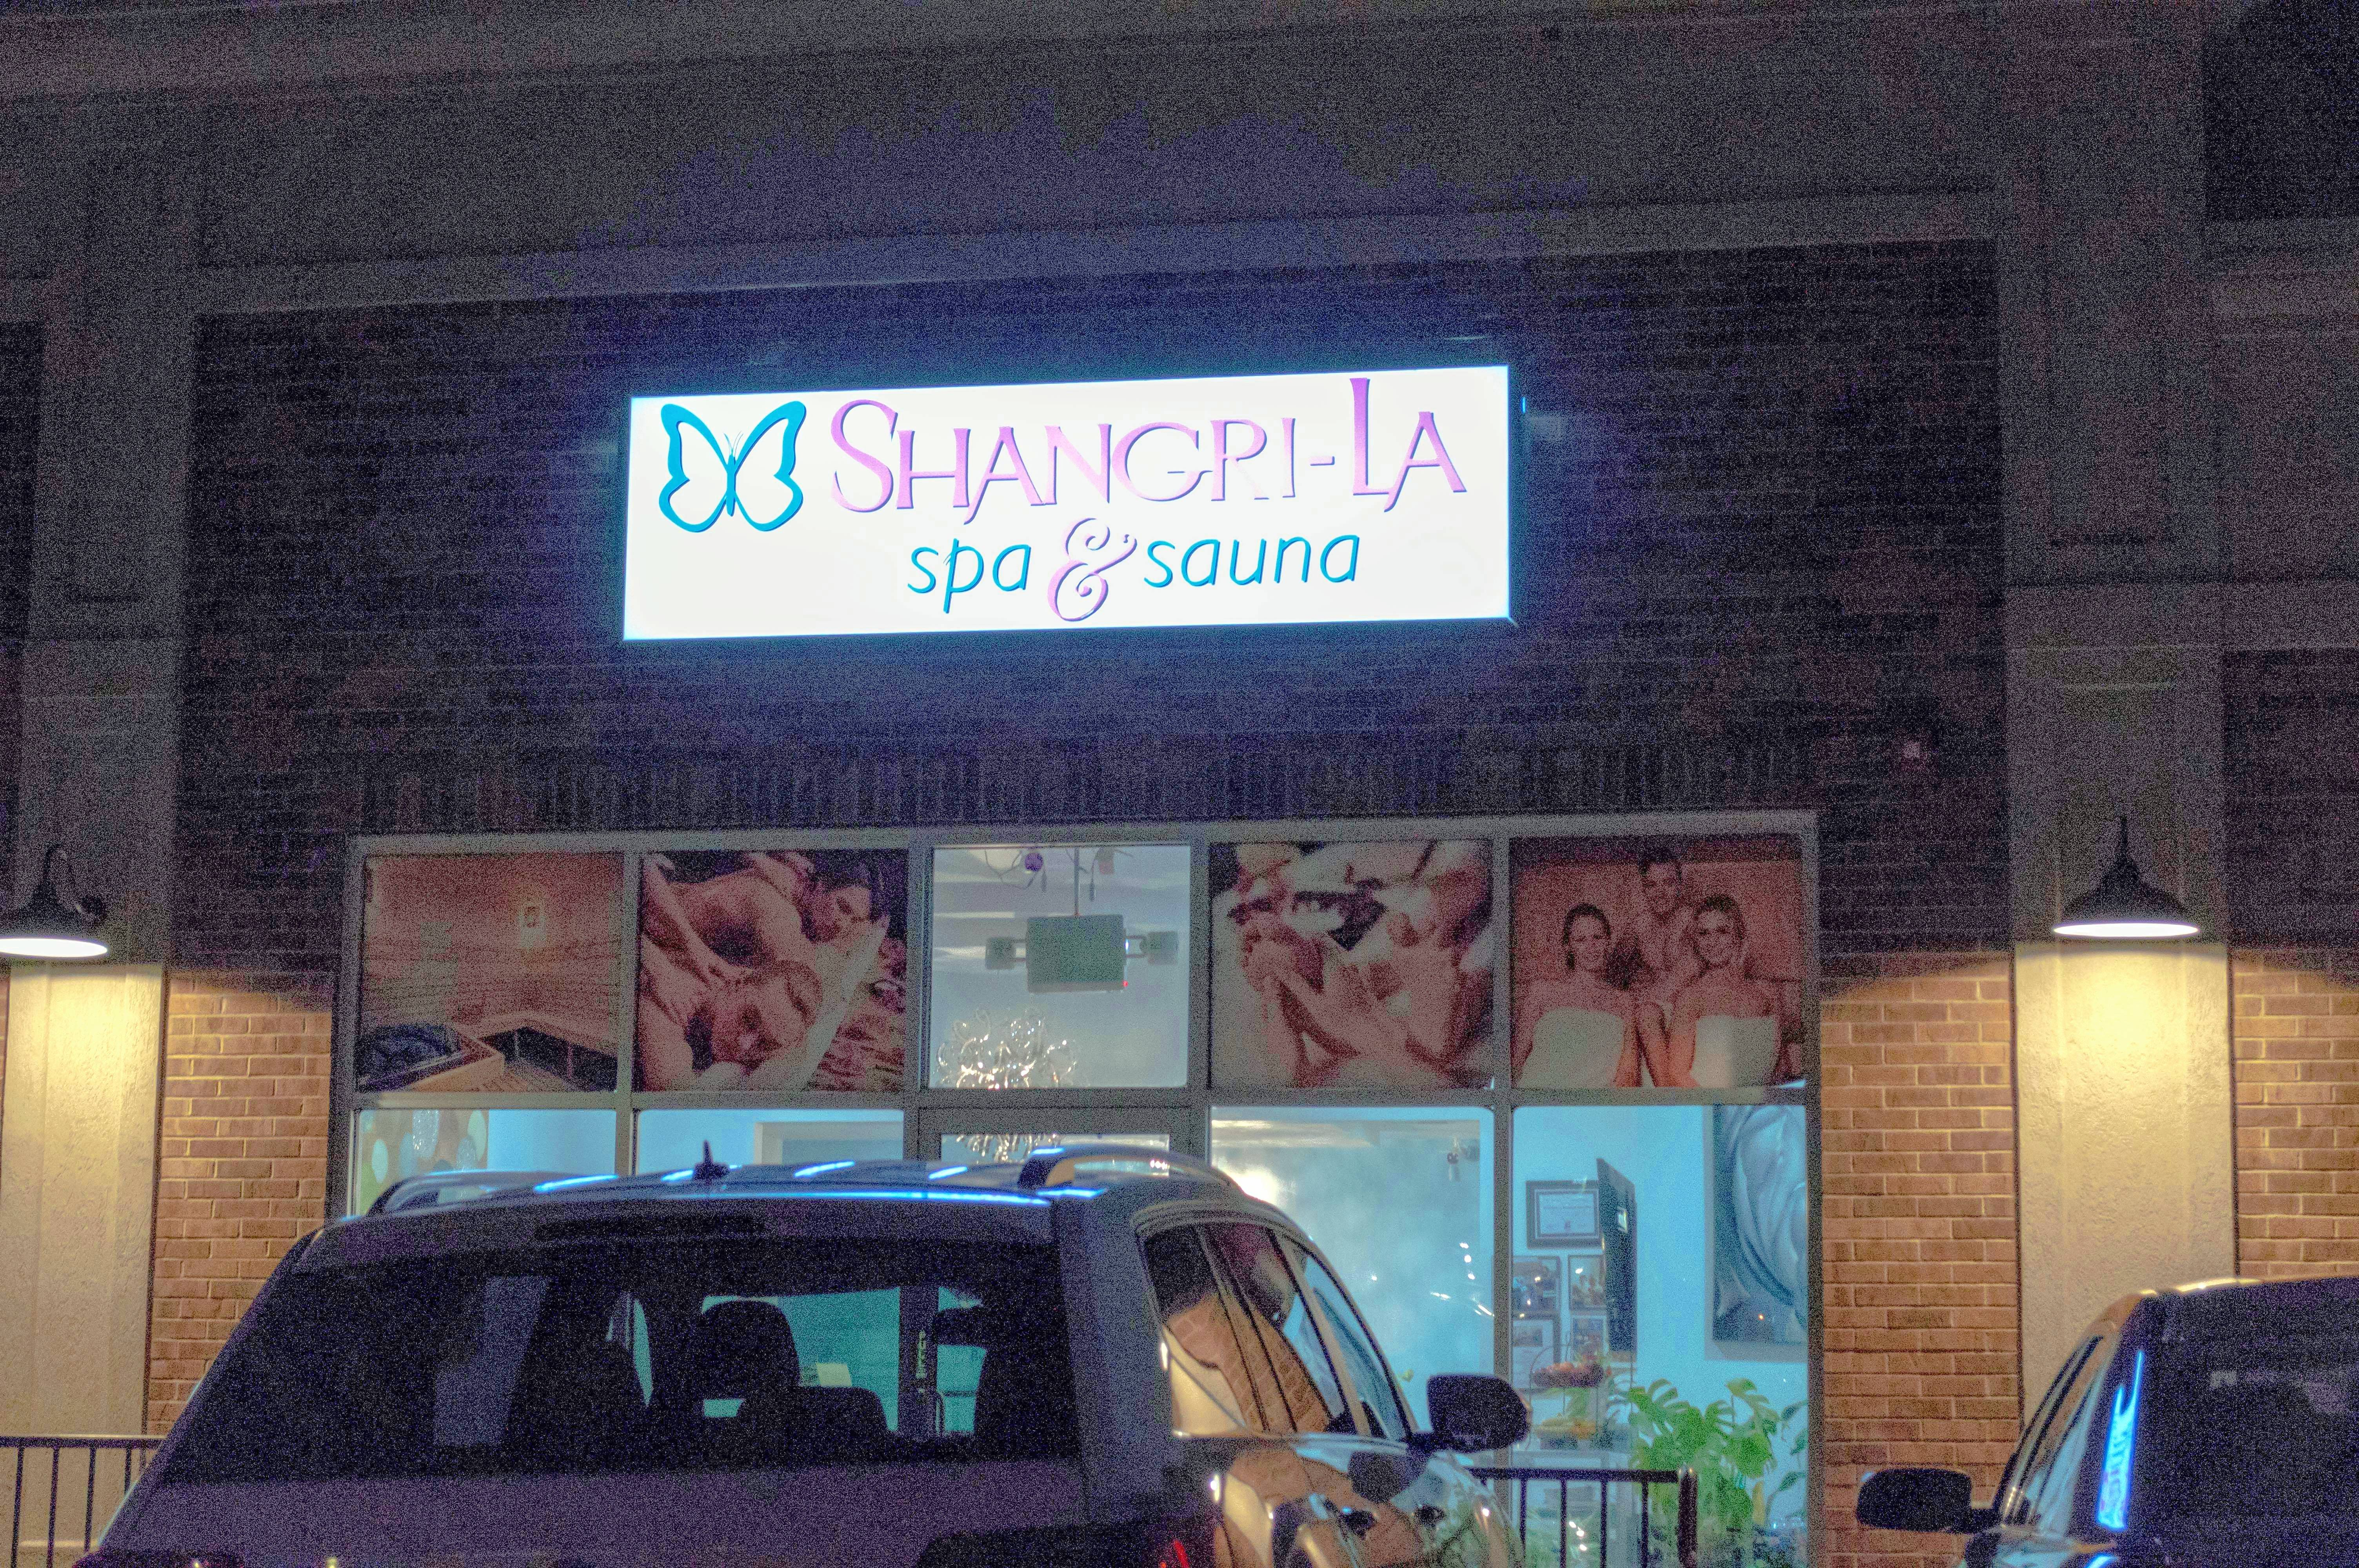 James Fuller/jfuller@dailyherald.comThe Shangri-La Spa & Sauna could become the fifth St. Charles massage business to close because of prostitution allegations.